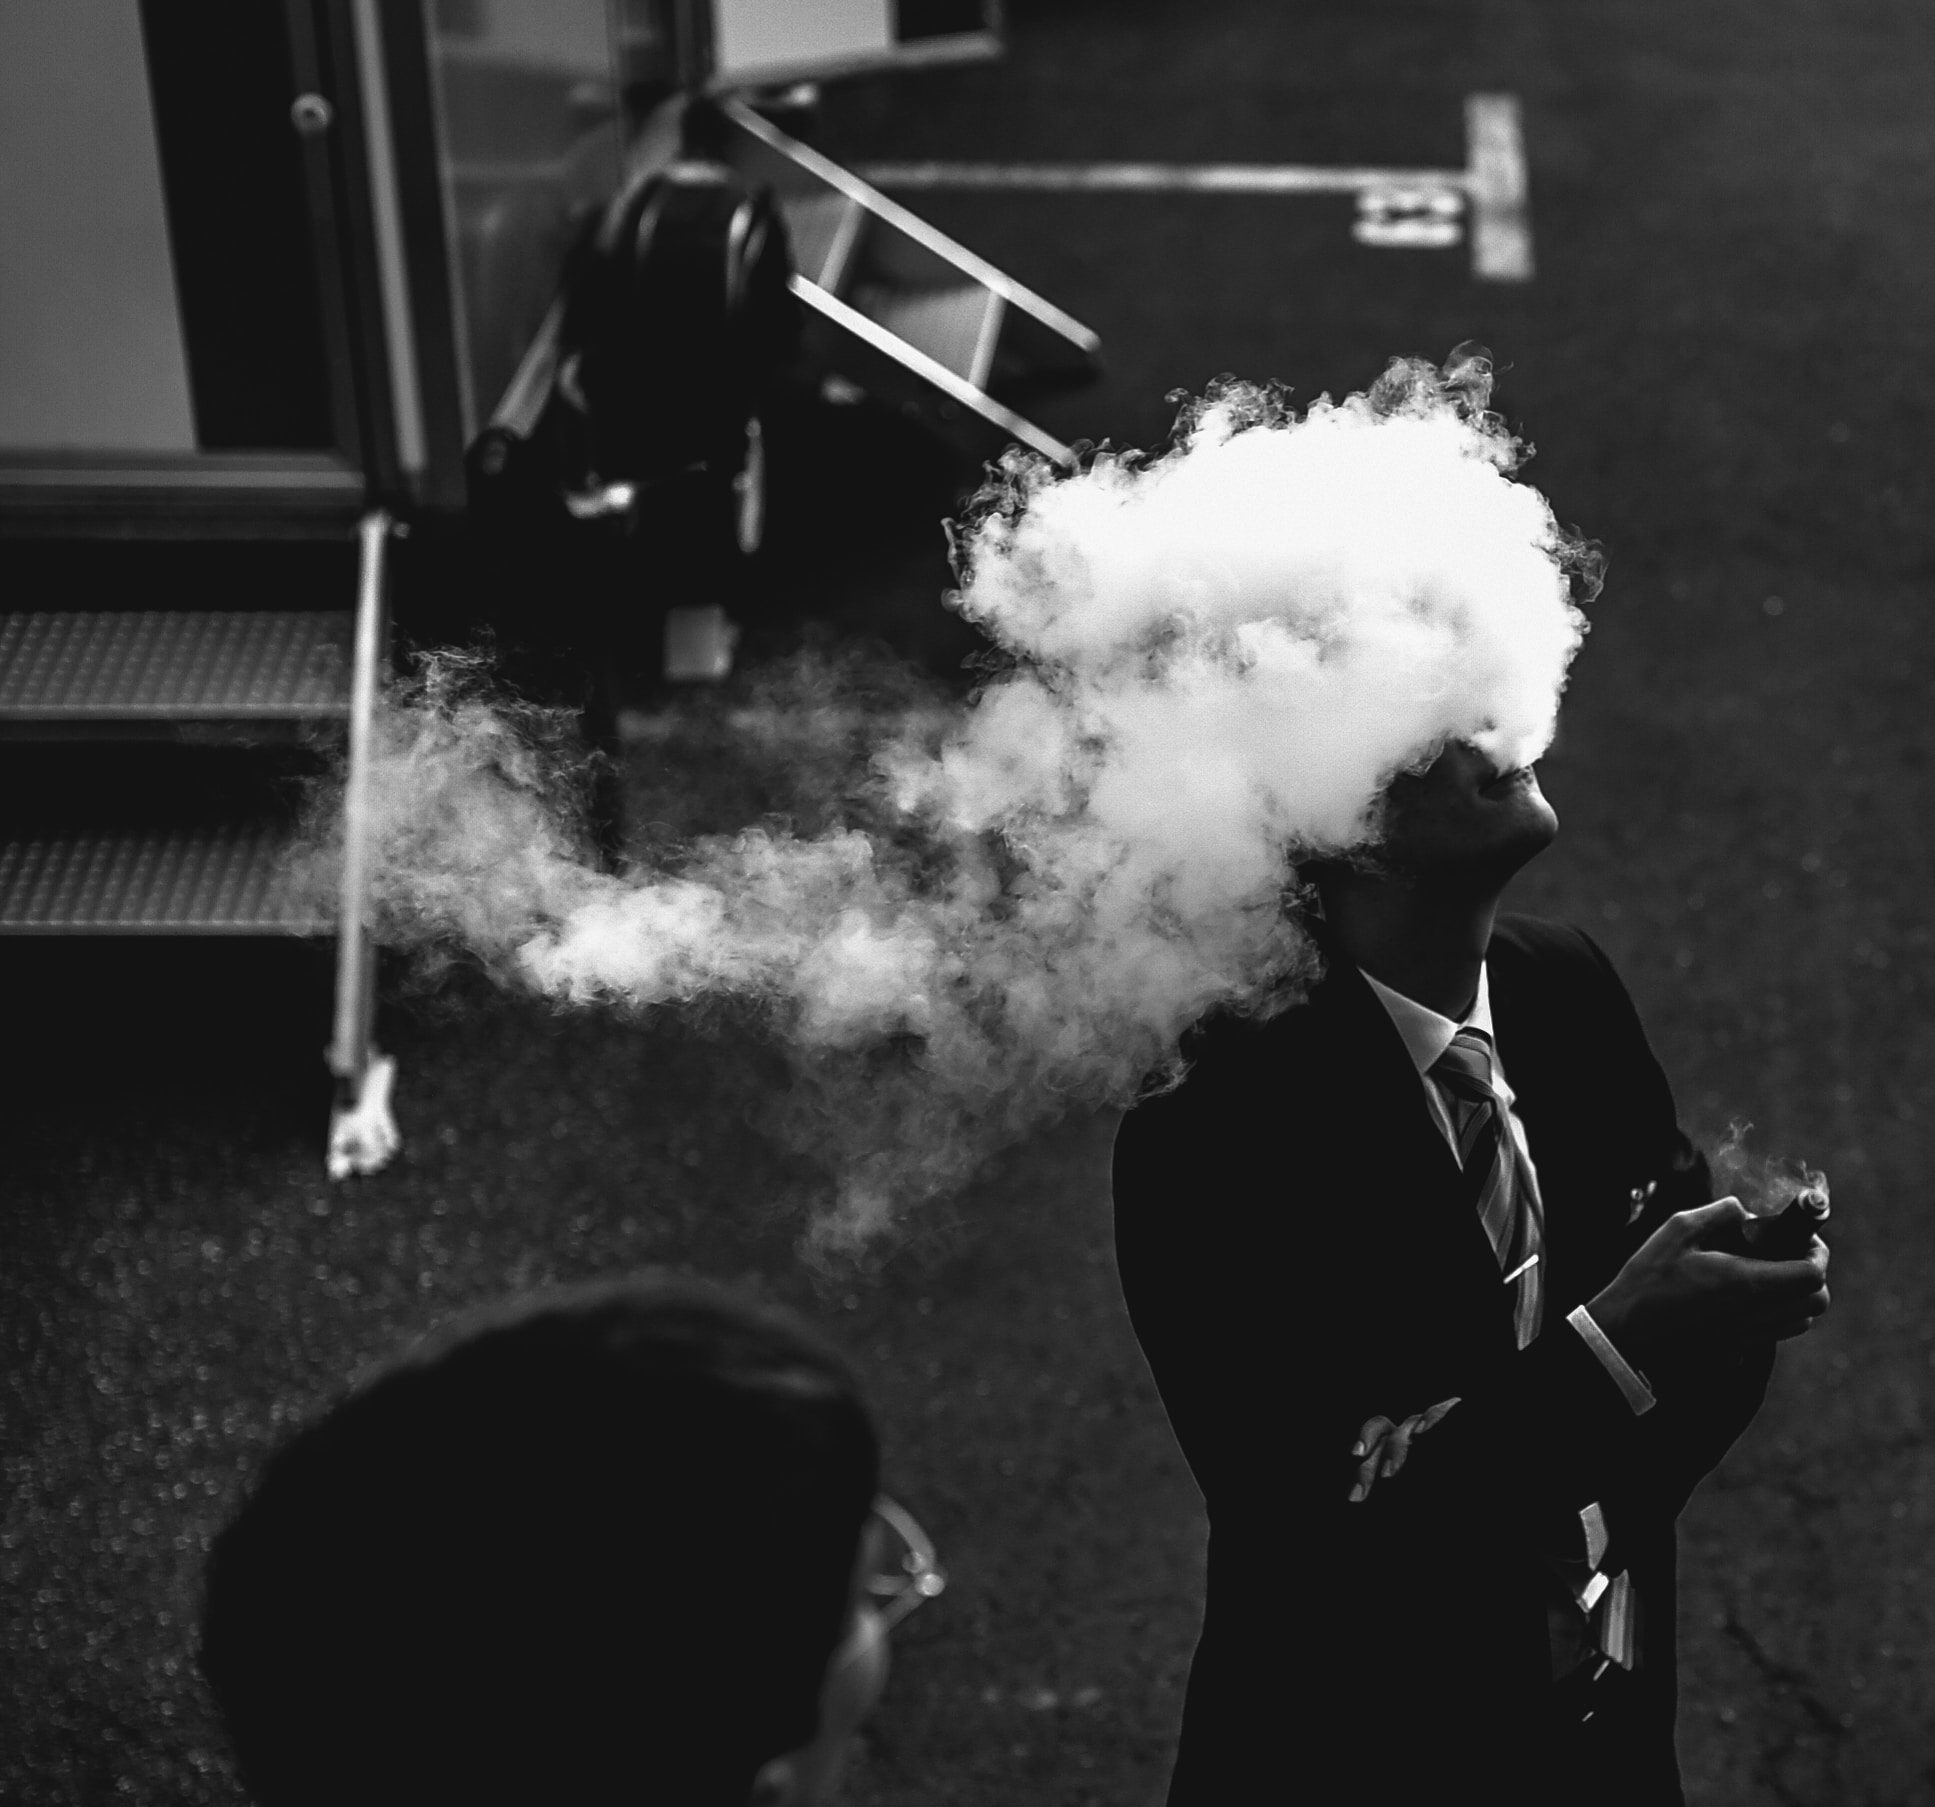 vaping in asia - factasia.org